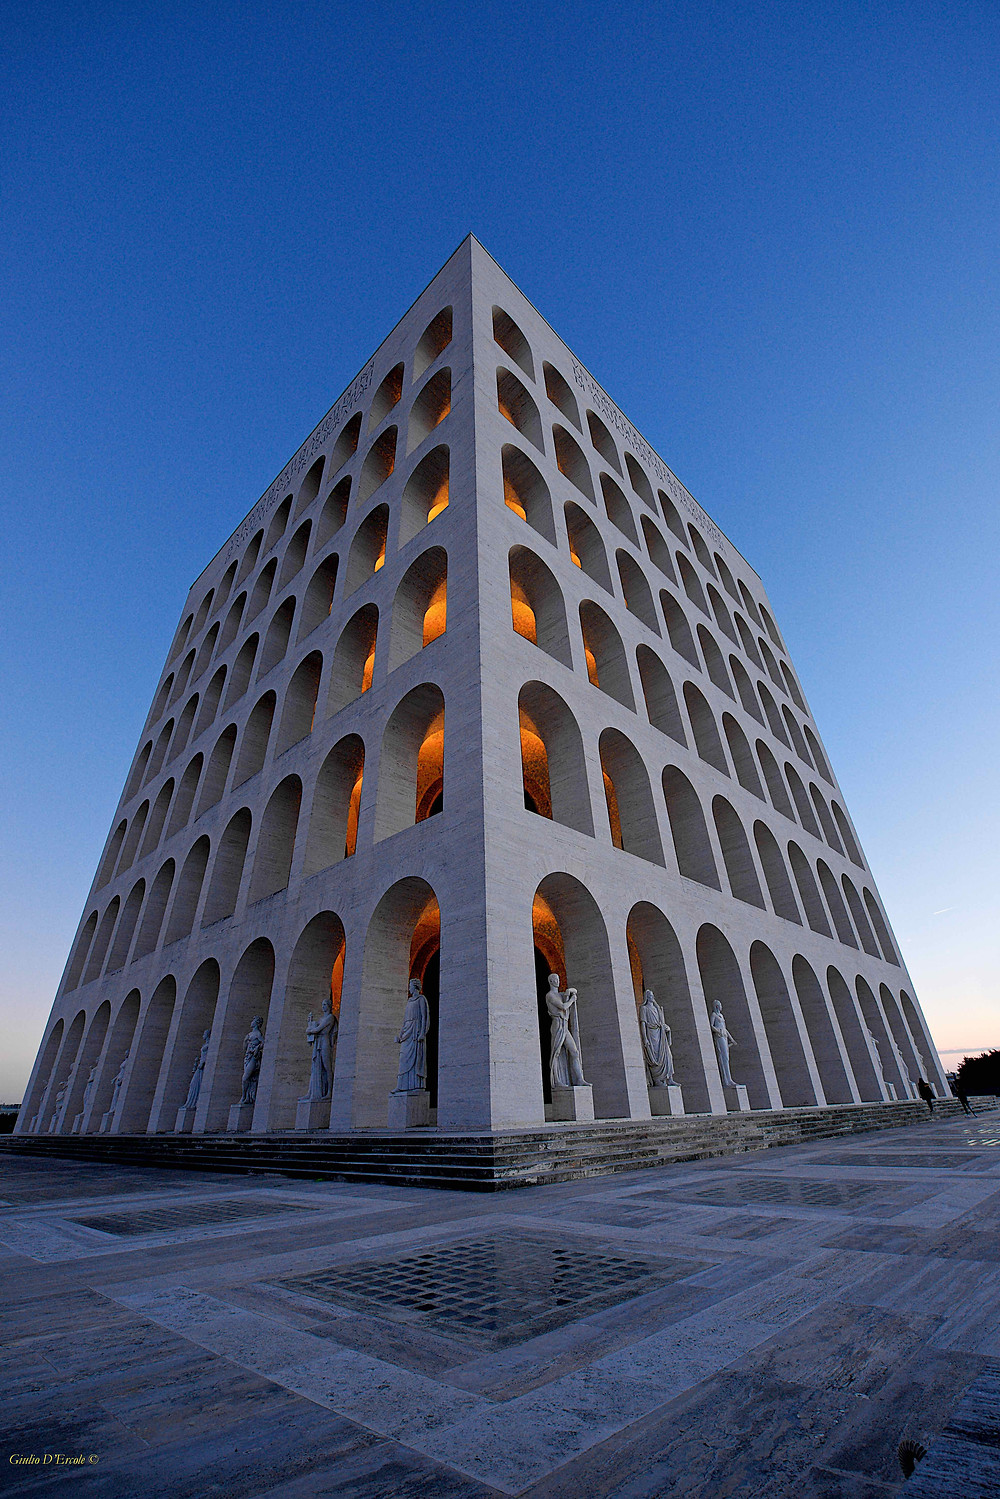 A masterpiece of 1920s Italian Architecture: The Square Colosseum! Capture Rome iconic locations with Giulio D'Ercole Photo workshops.